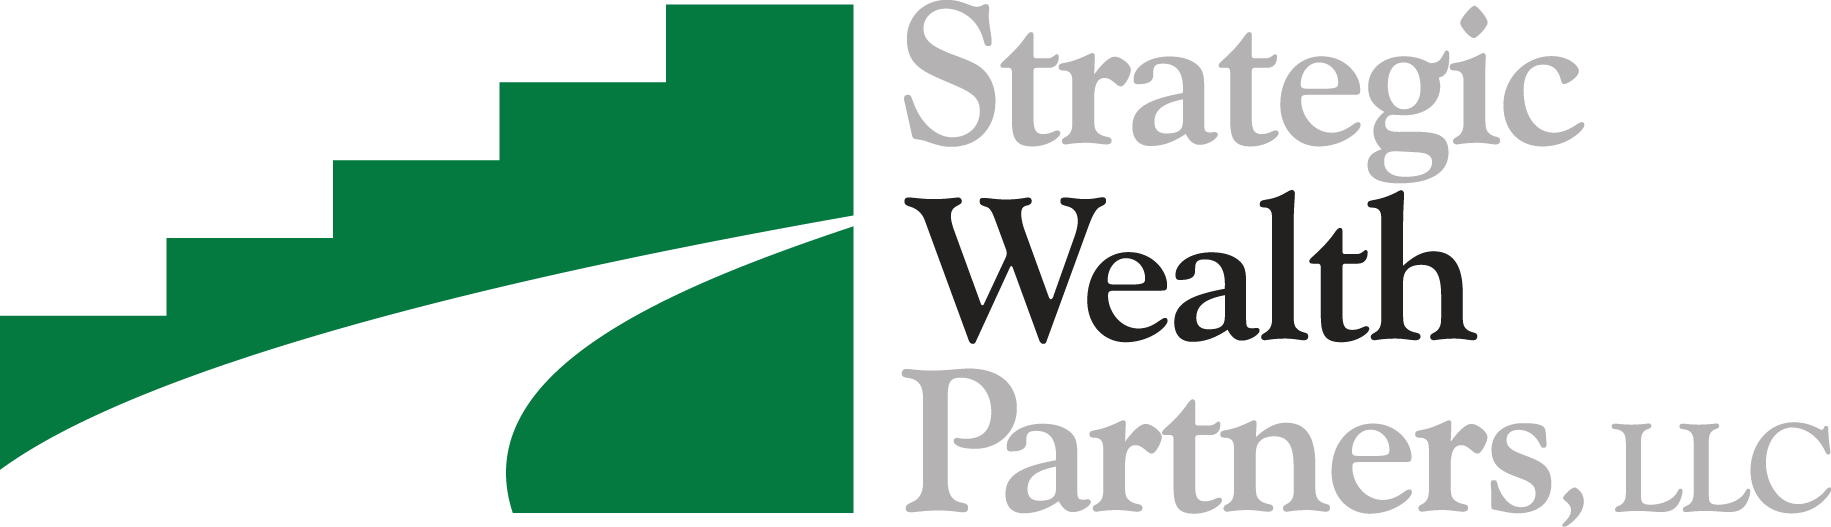 Strategic Wealth Partners LLC